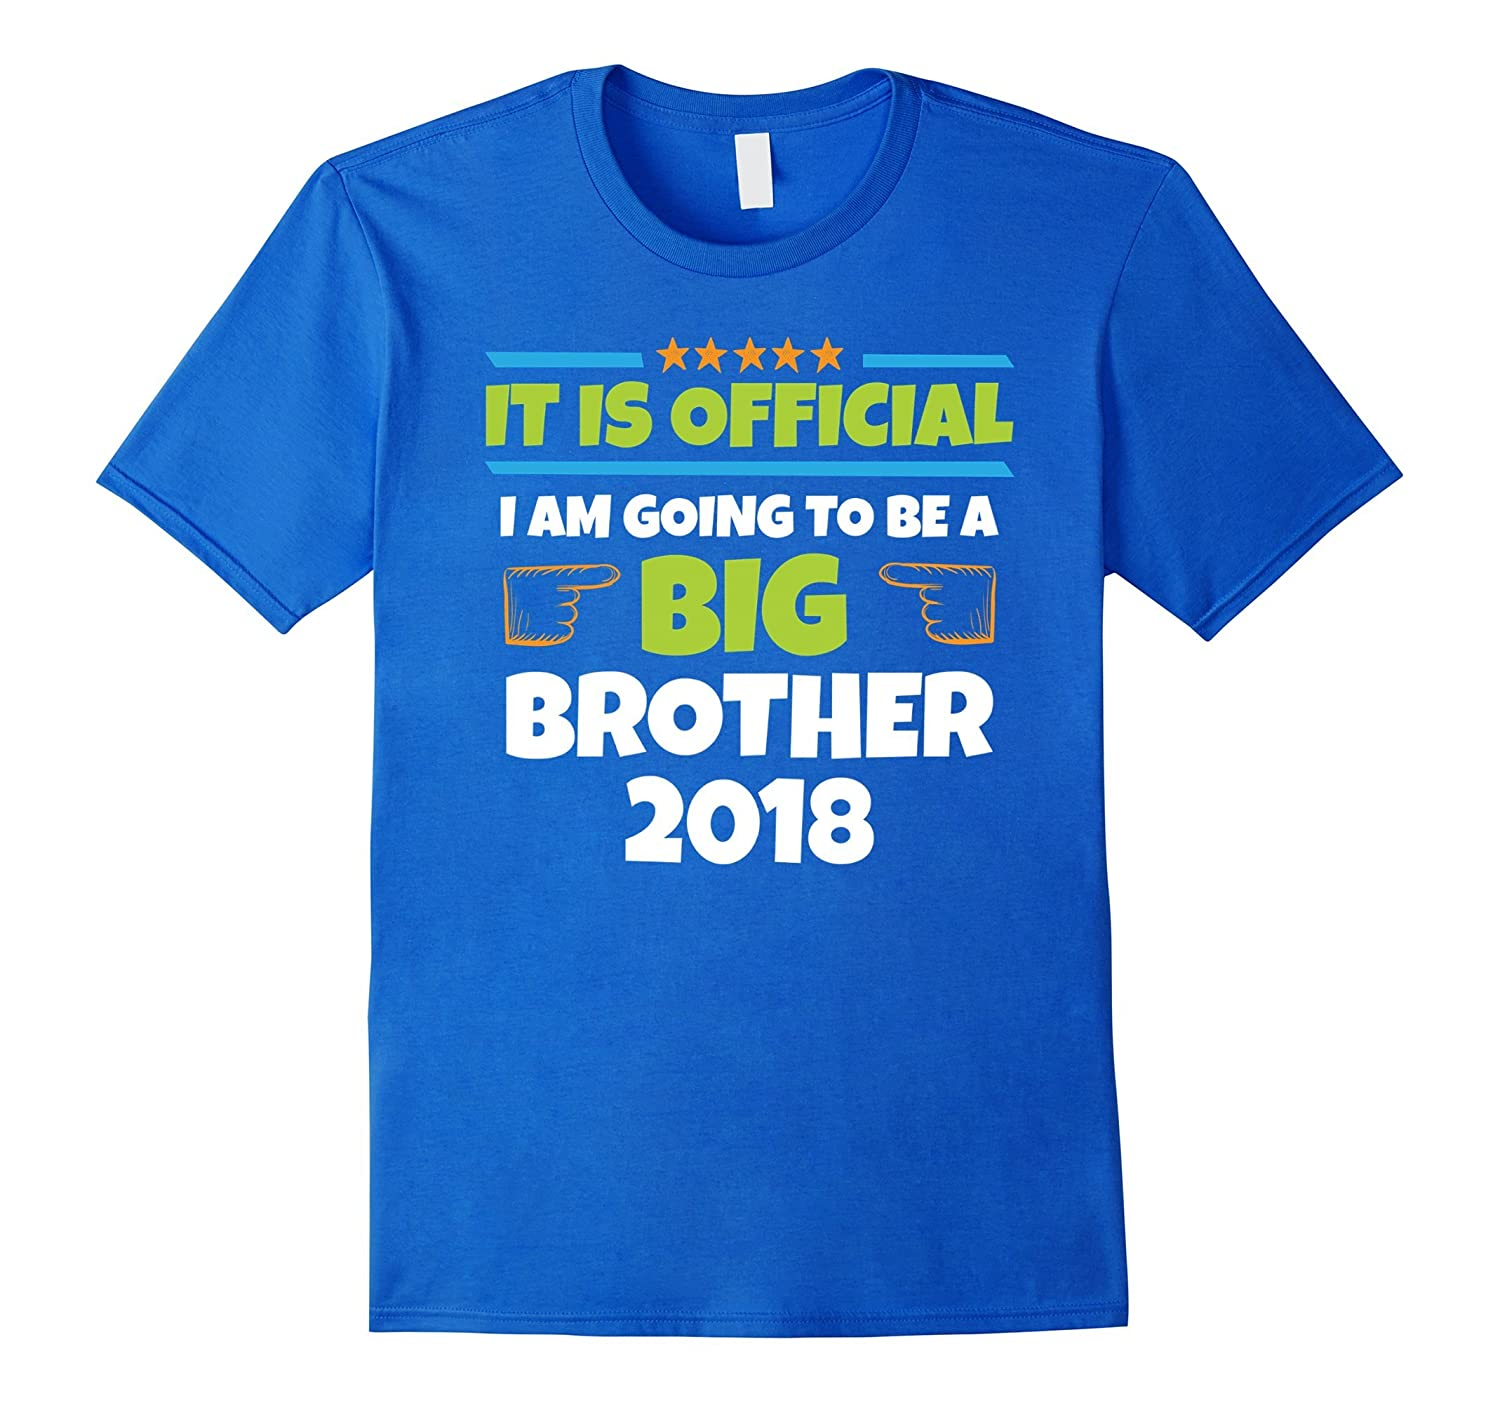 I Am Going To Be A Big Brother 2018 Shirt - It Is Official-FL